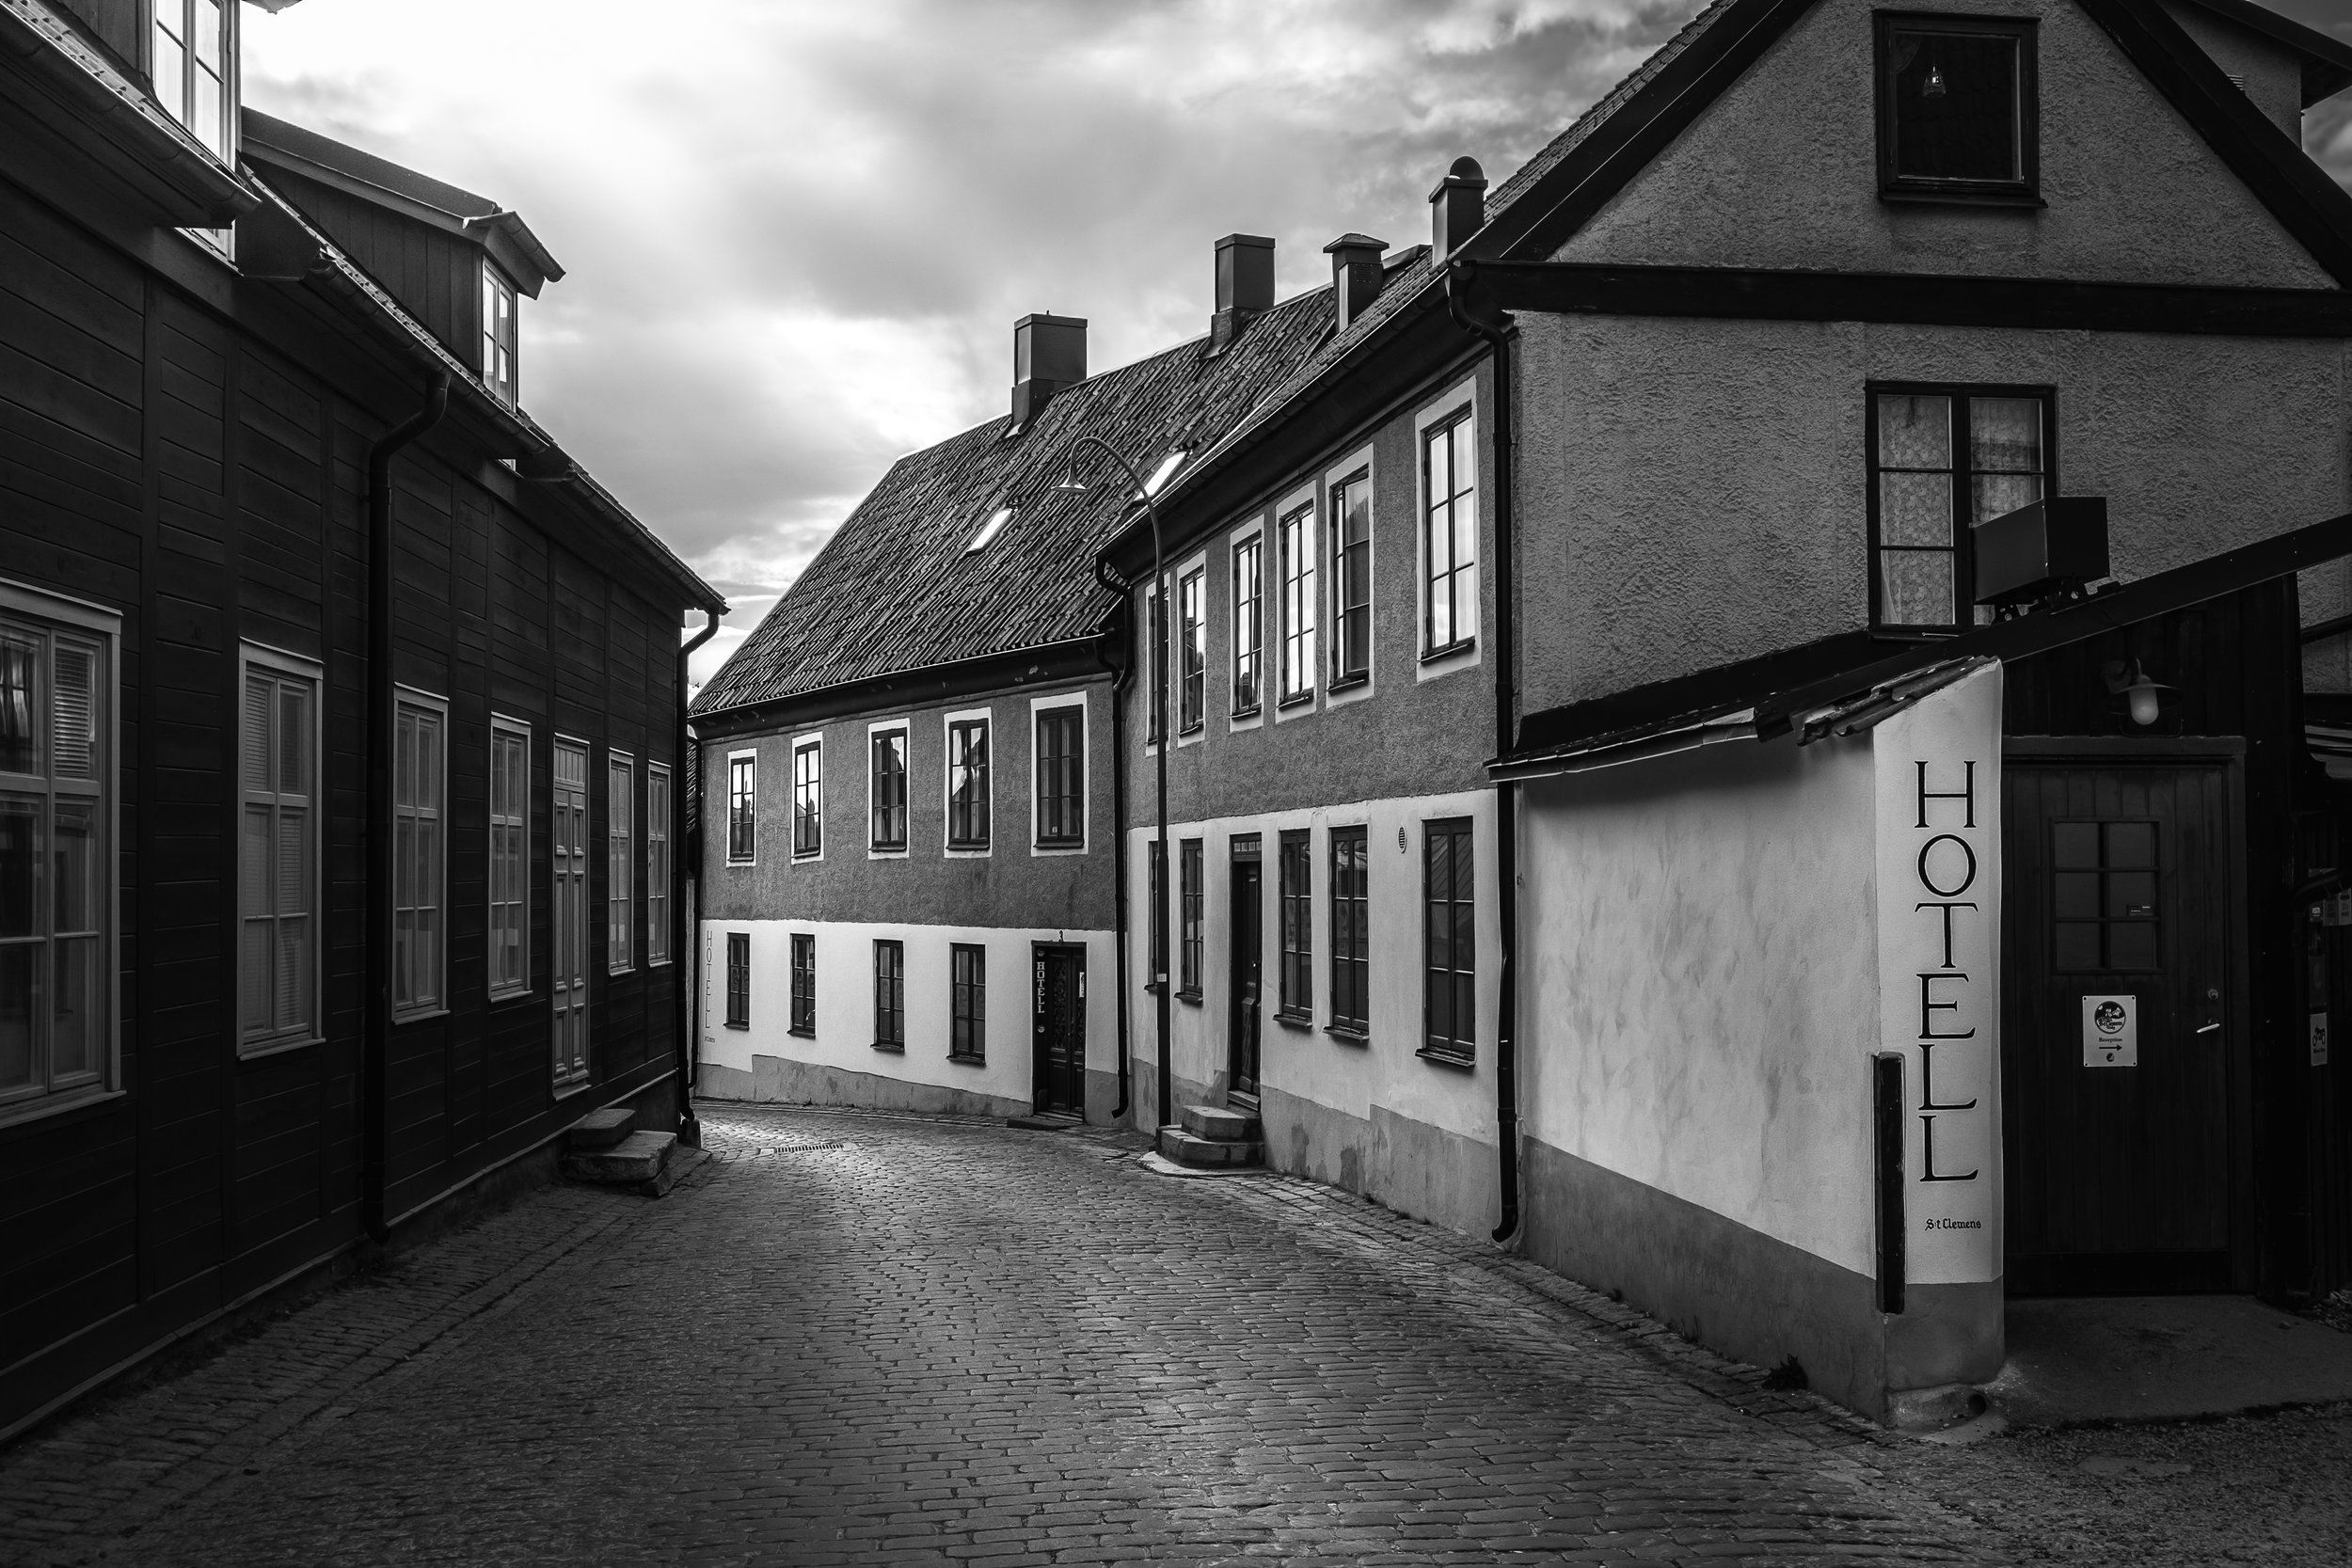 The old buildings at Visby old town